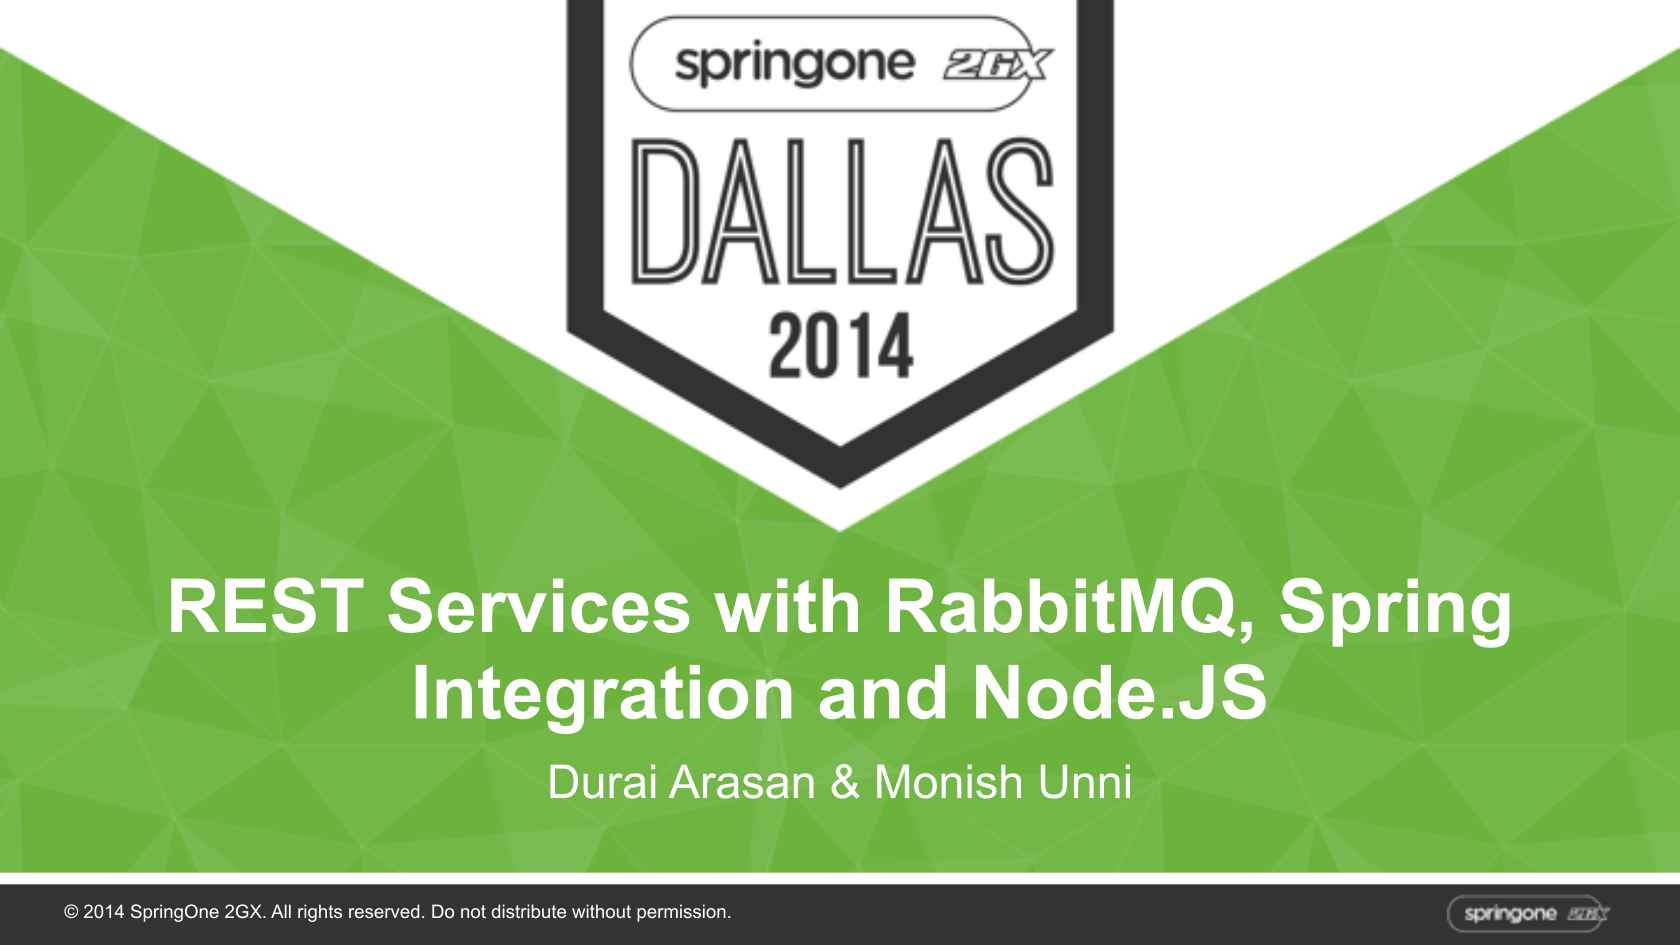 REST Services with RabbitMQ, Spring Integration and Node JS